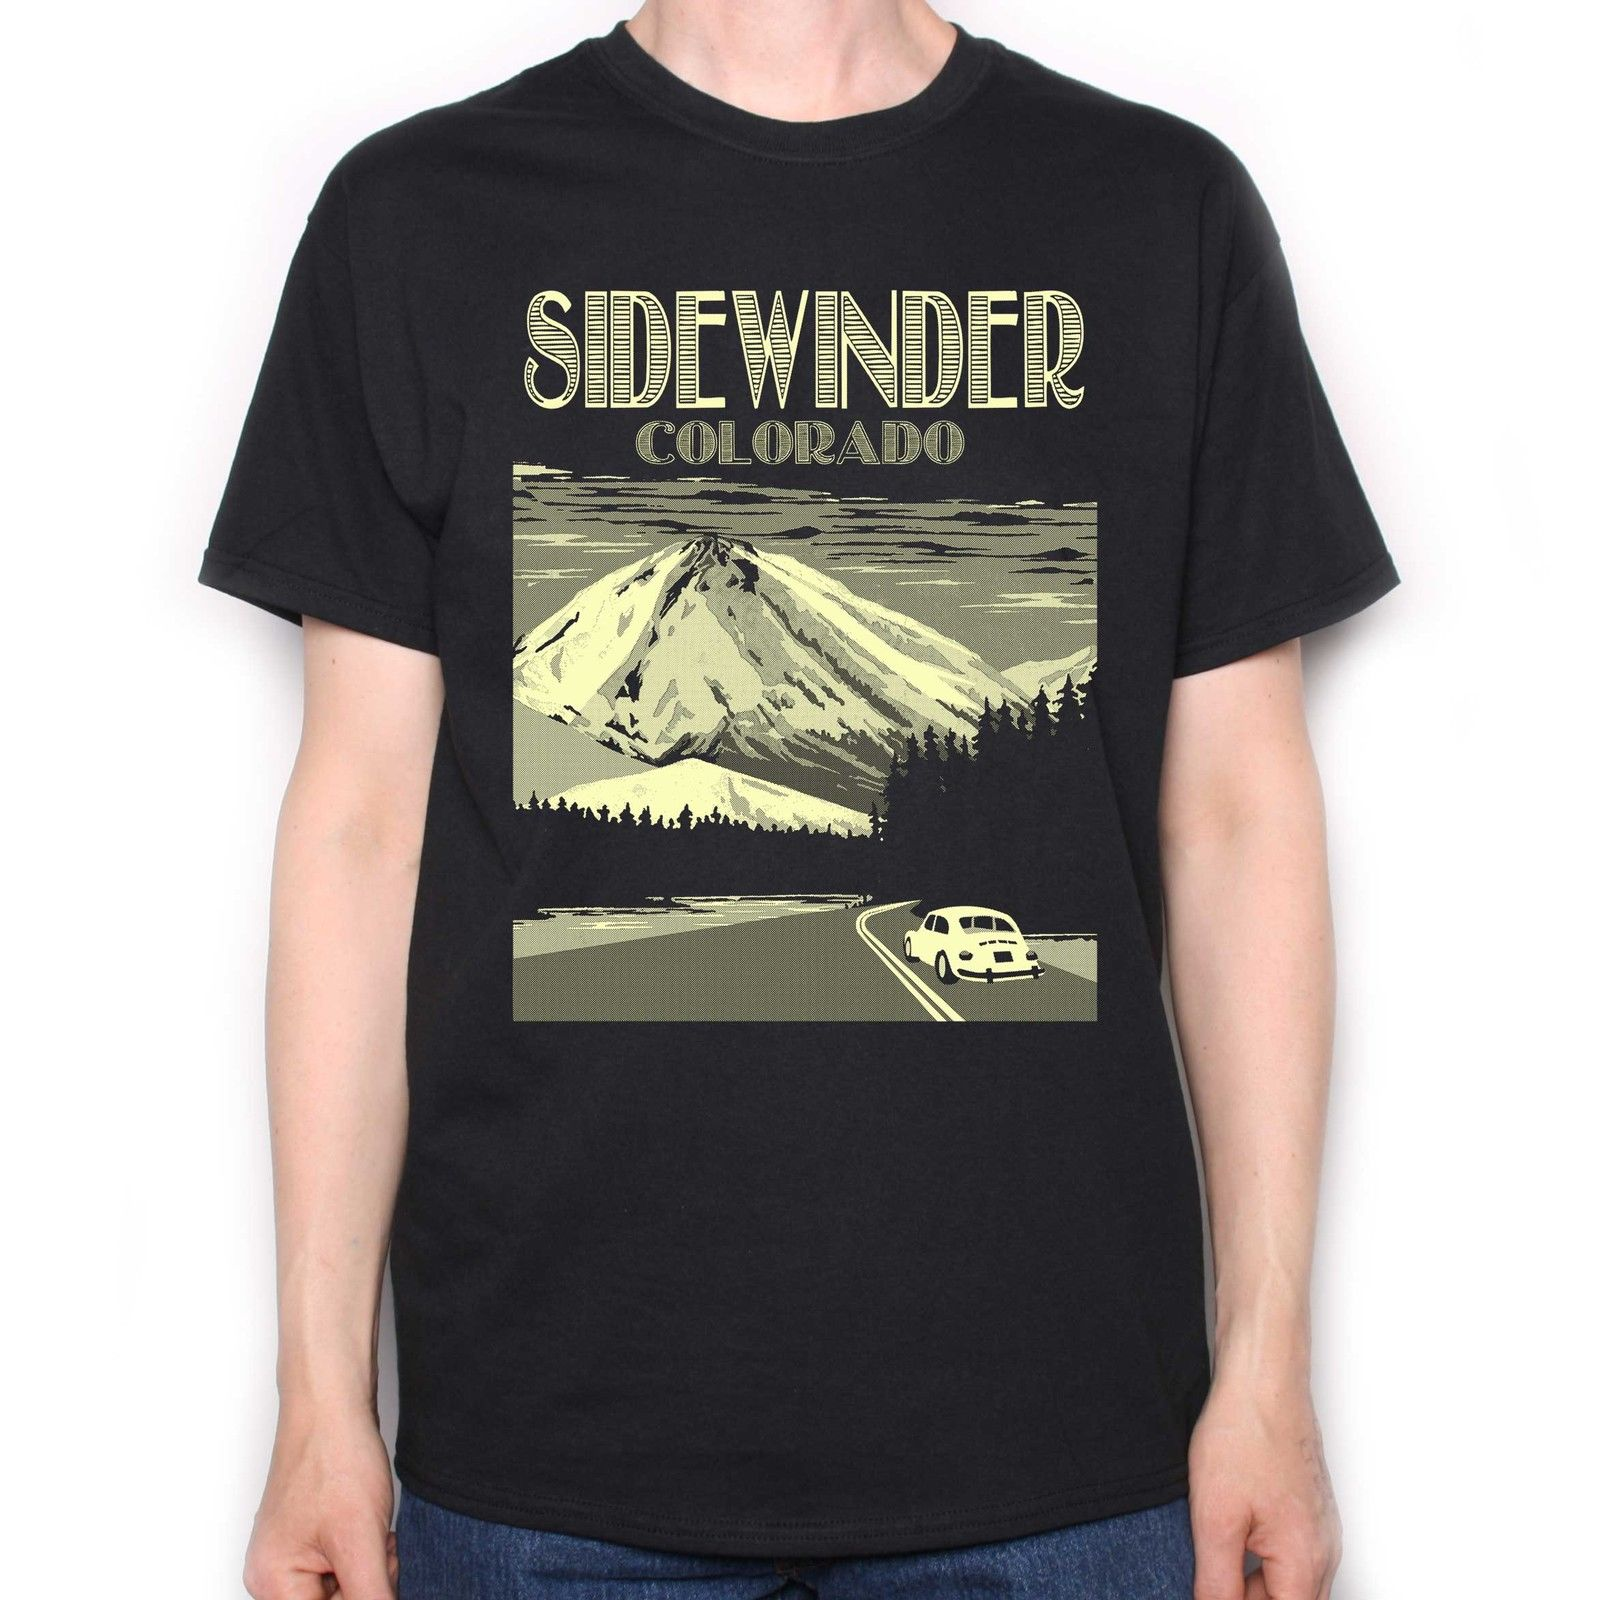 Sidewinder Colorado Travel Poster Cult Movie T Shirt for Shining Afficionados Mens Tops Cool O Neck T-Shirt Top Tee